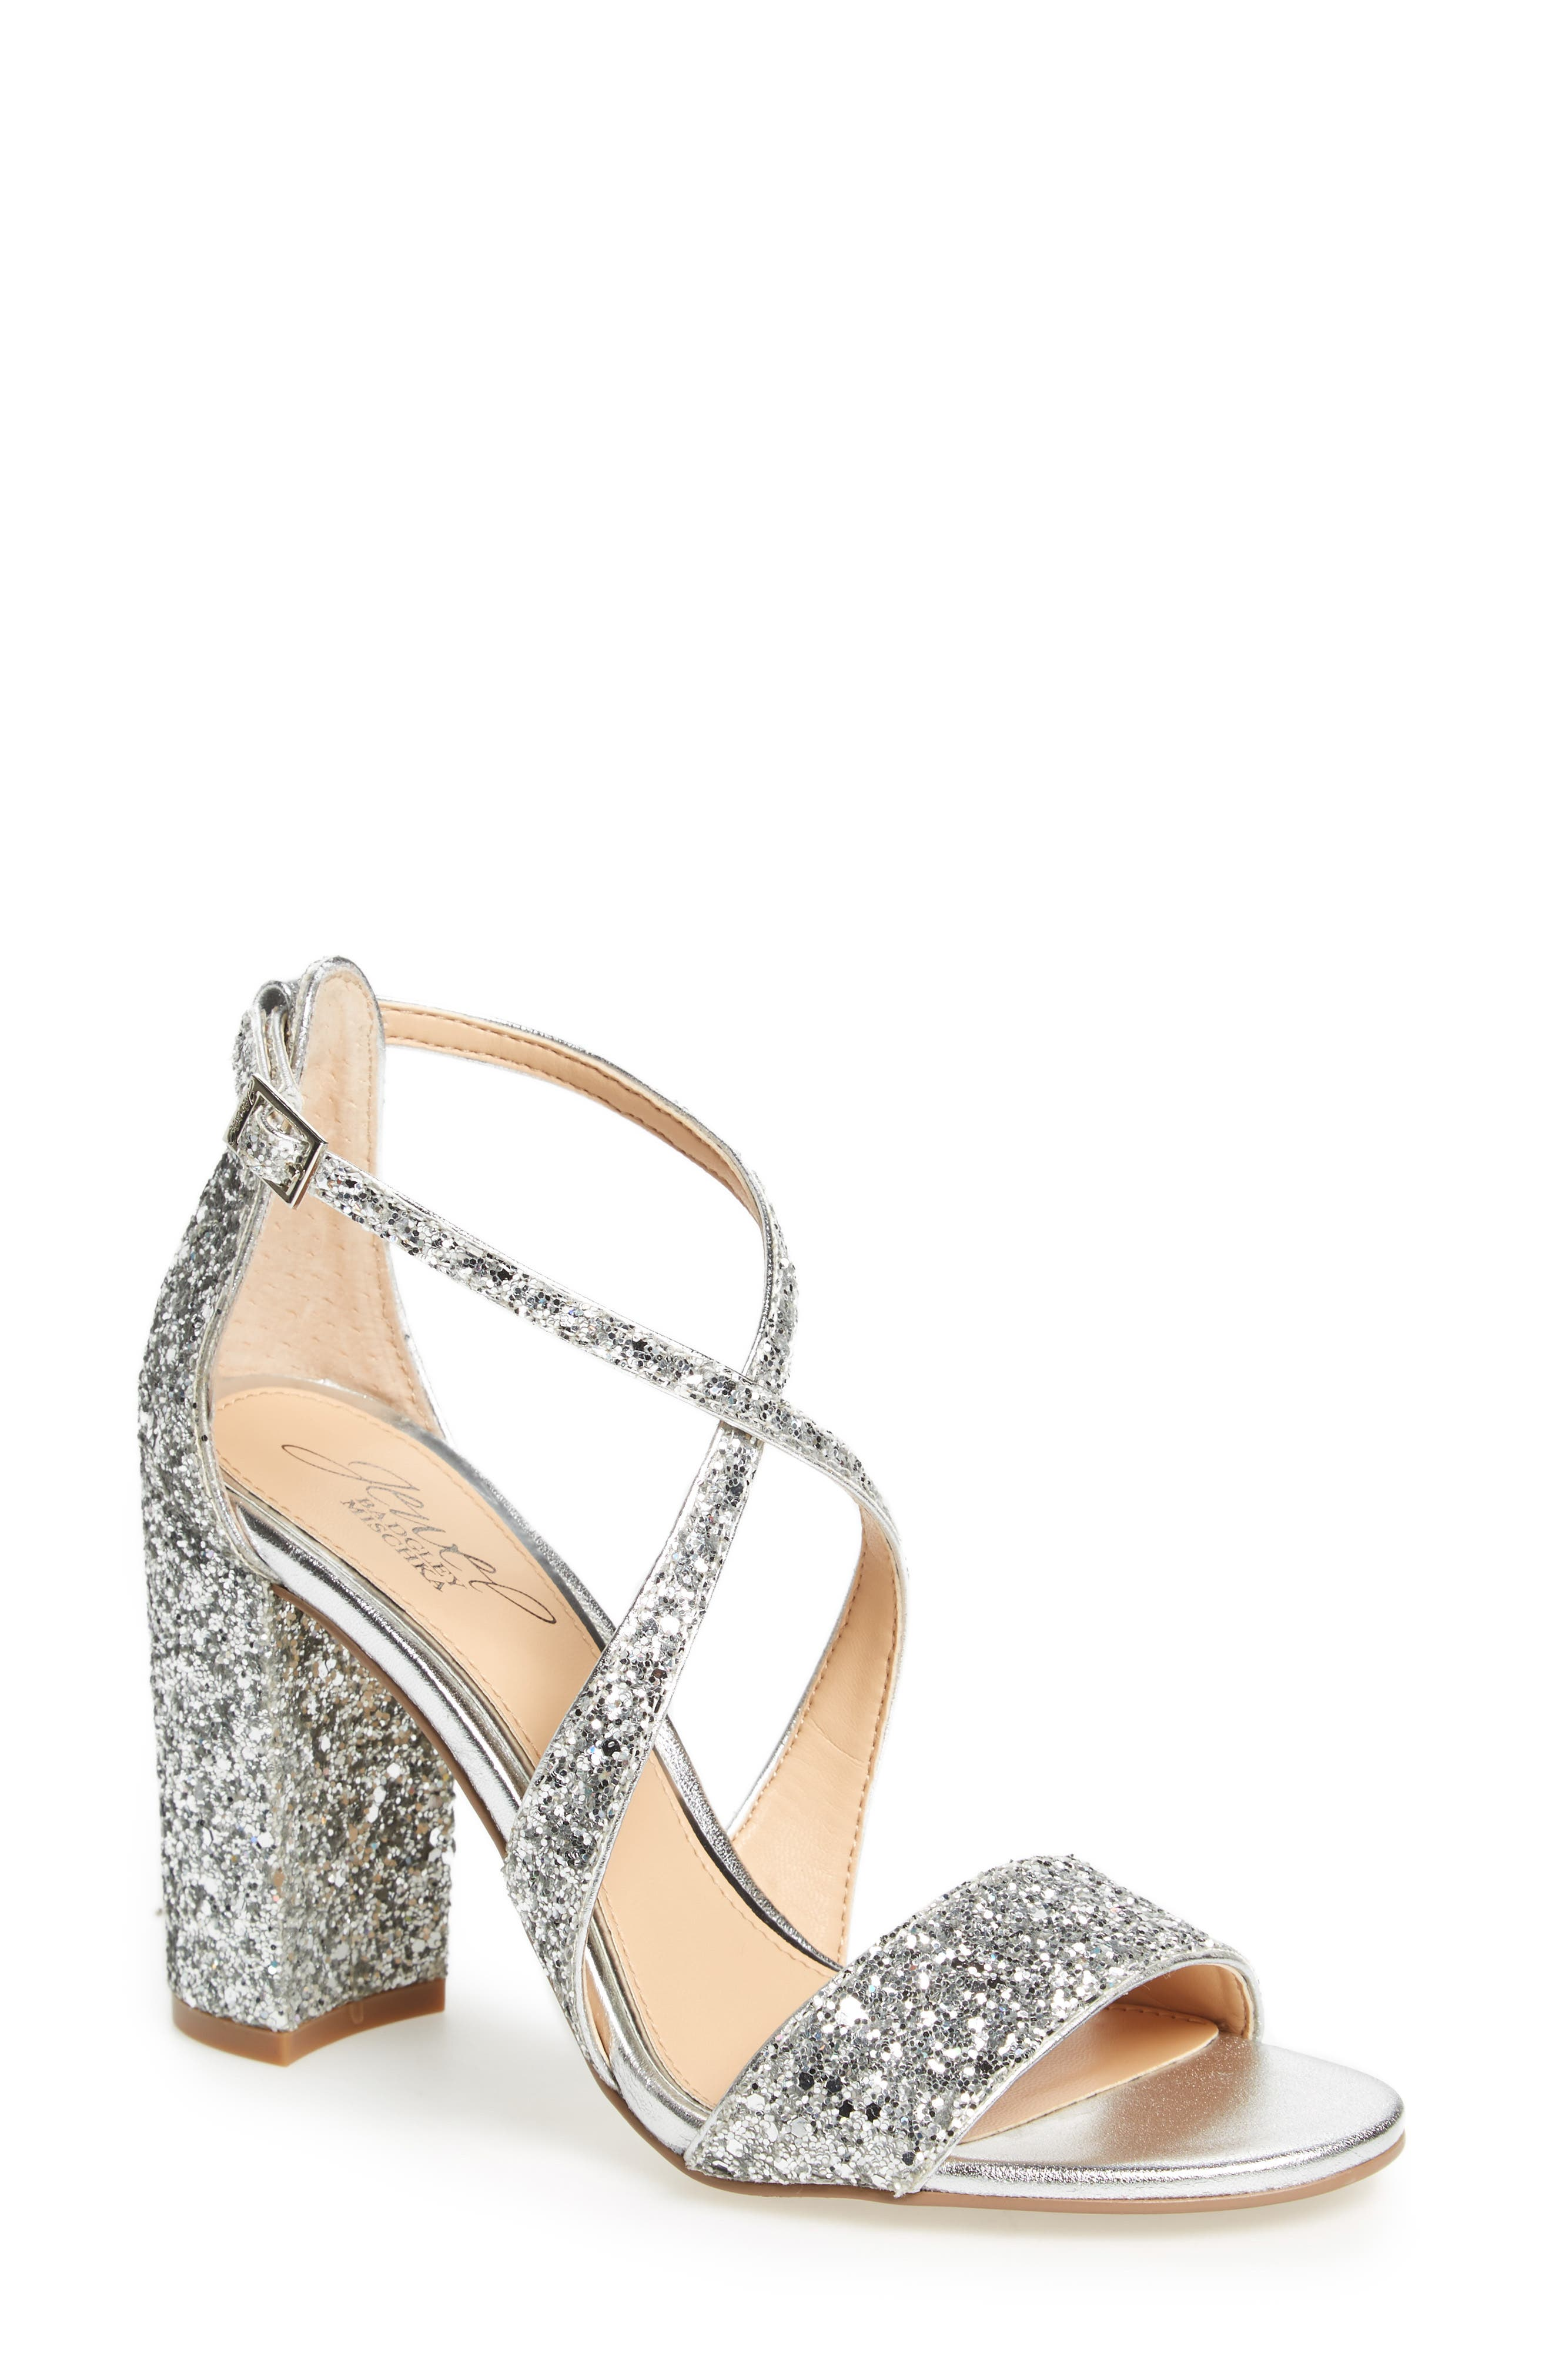 Cook Block Heel Glitter Sandal,                         Main,                         color, Silver Leather